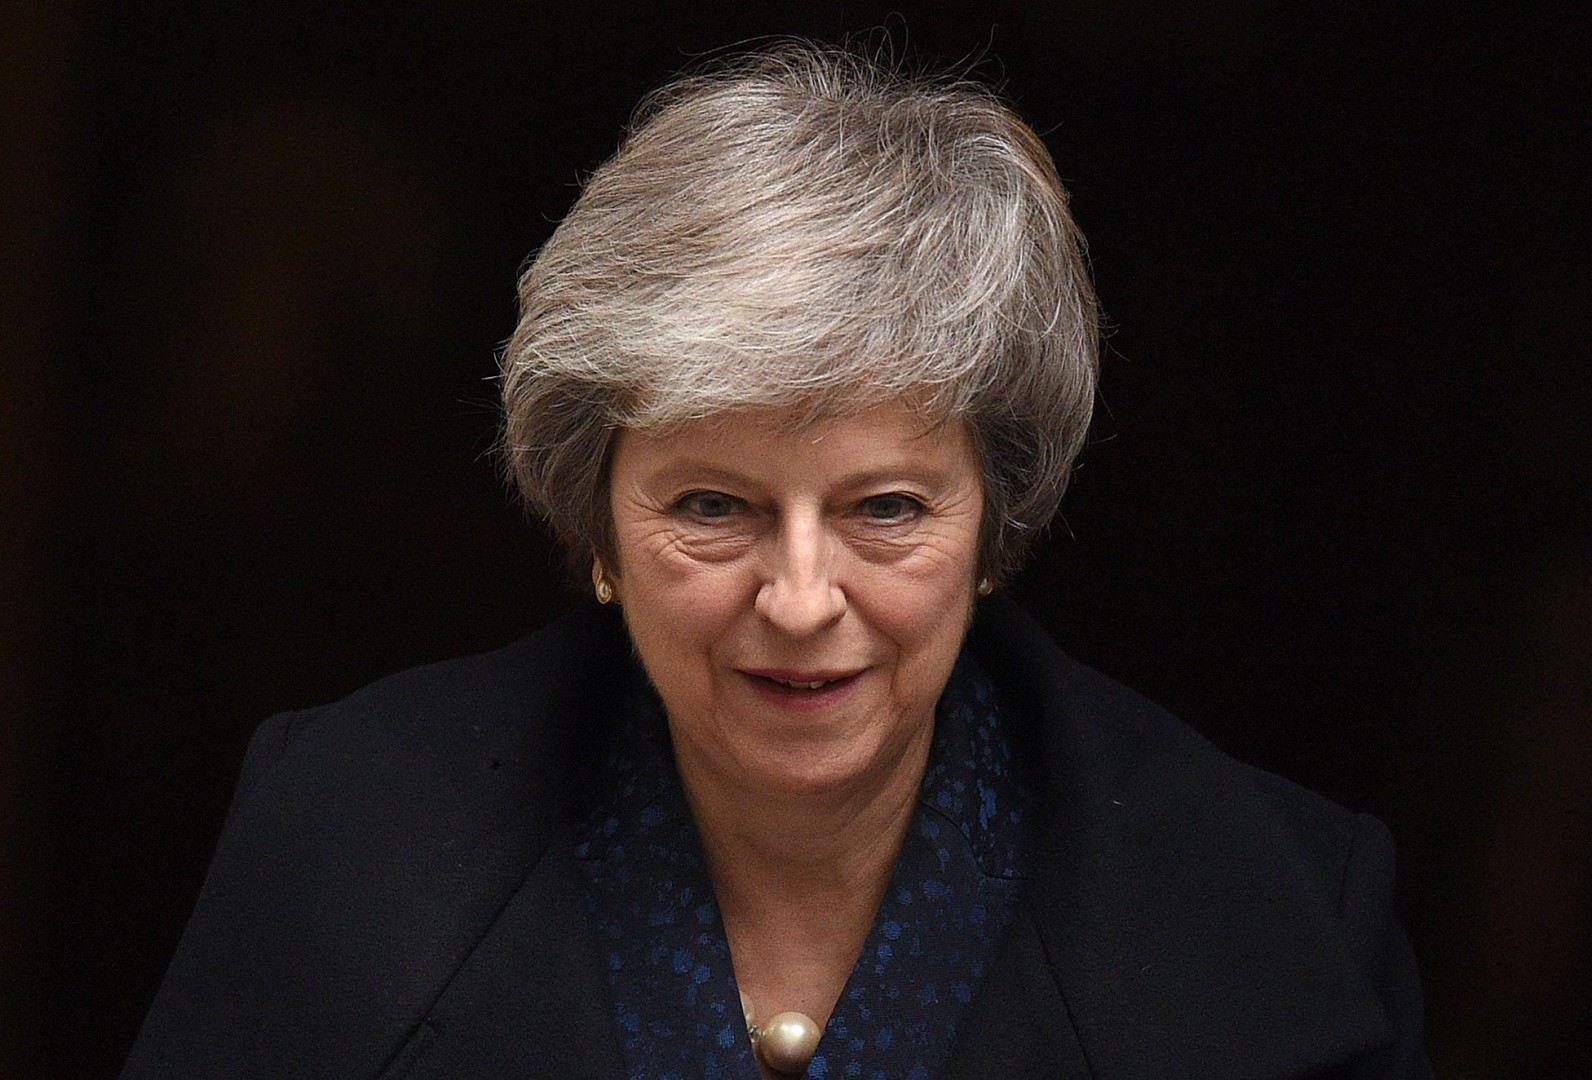 "Britain's Prime Minister Theresa May leaves 10 Downing Street in central London on December 12, 2018 ahead of the weekly question and answer session, Prime Ministers Questions (PMQs), in the House of Commons. - British Prime Minister Theresa May was hit by a no-confidence motion by her own party on December 12 over the unpopular Brexit deal she struck with EU leaders last month. Facing her biggest crisis since assuming office a month after Britons voted in June 2016 to leave Europe, May vowed to fight the coup attempt inside her own Conservative Party ""with everything I've got"". (Photo by Oli SCARFF / AFP)"